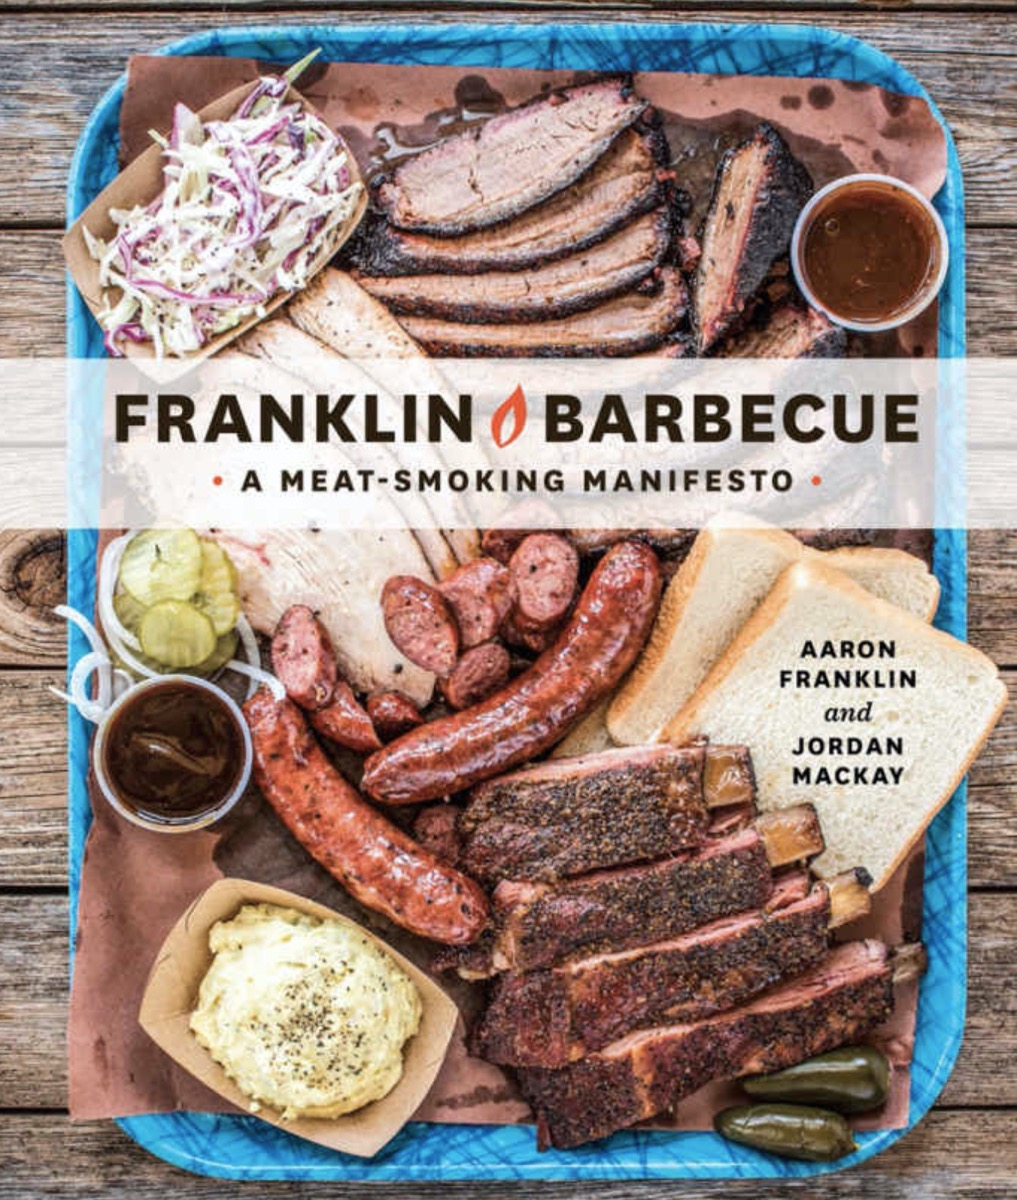 franklin barbecue cookbook with meats and mashed potatoes and pickles and bread on the cover